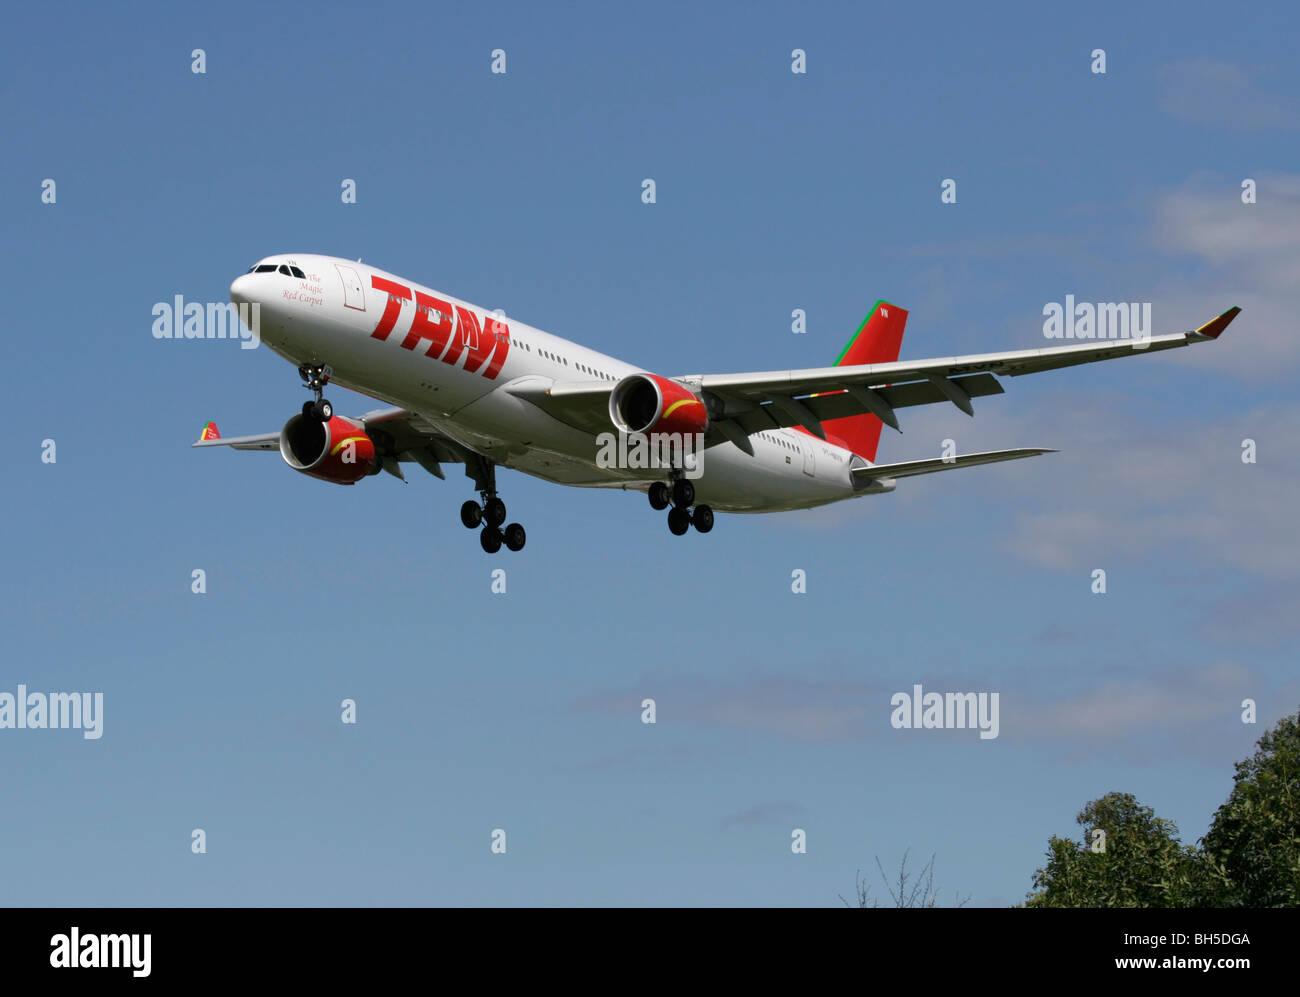 TAM Airlines Airbus A330-200 - Stock Image